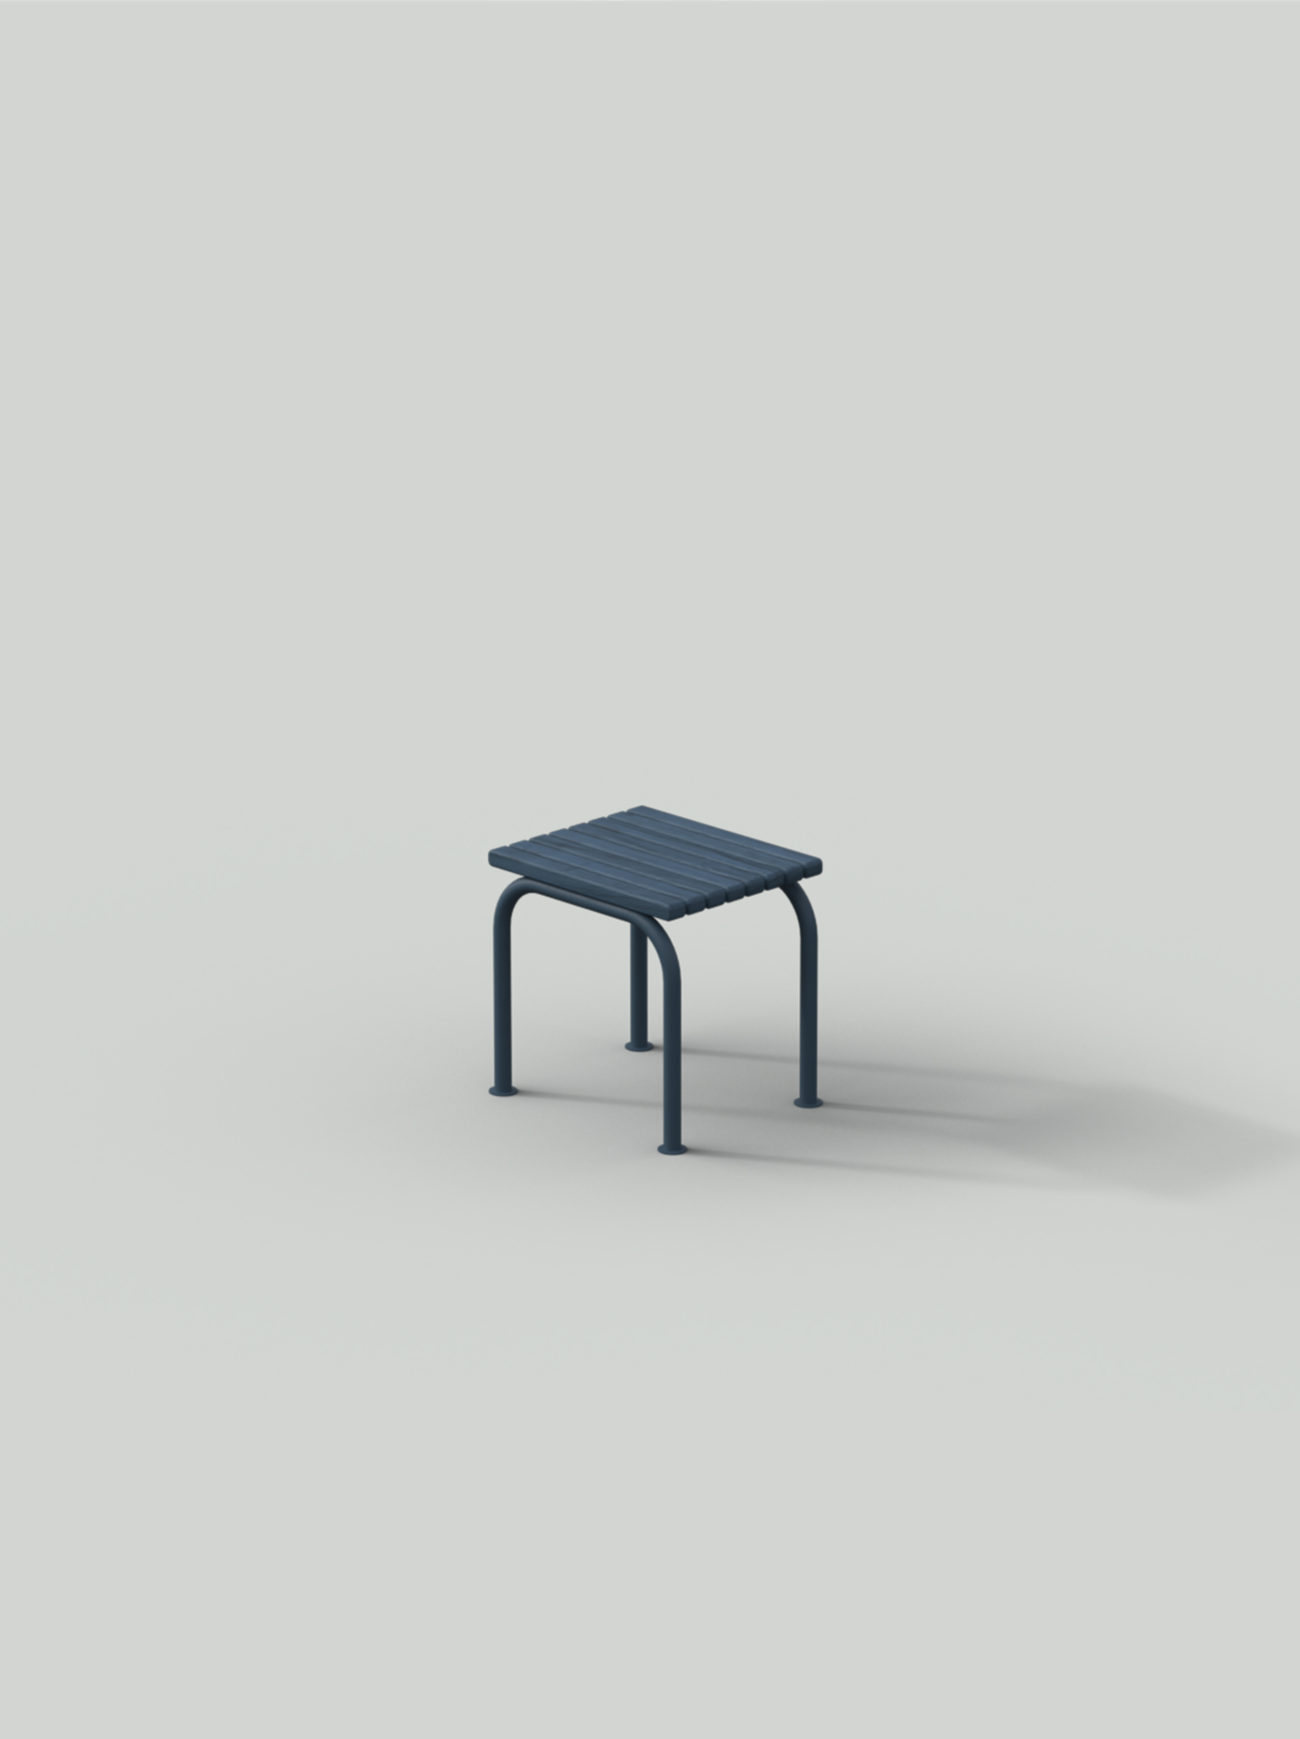 Blue stool with steel frame and wood planks